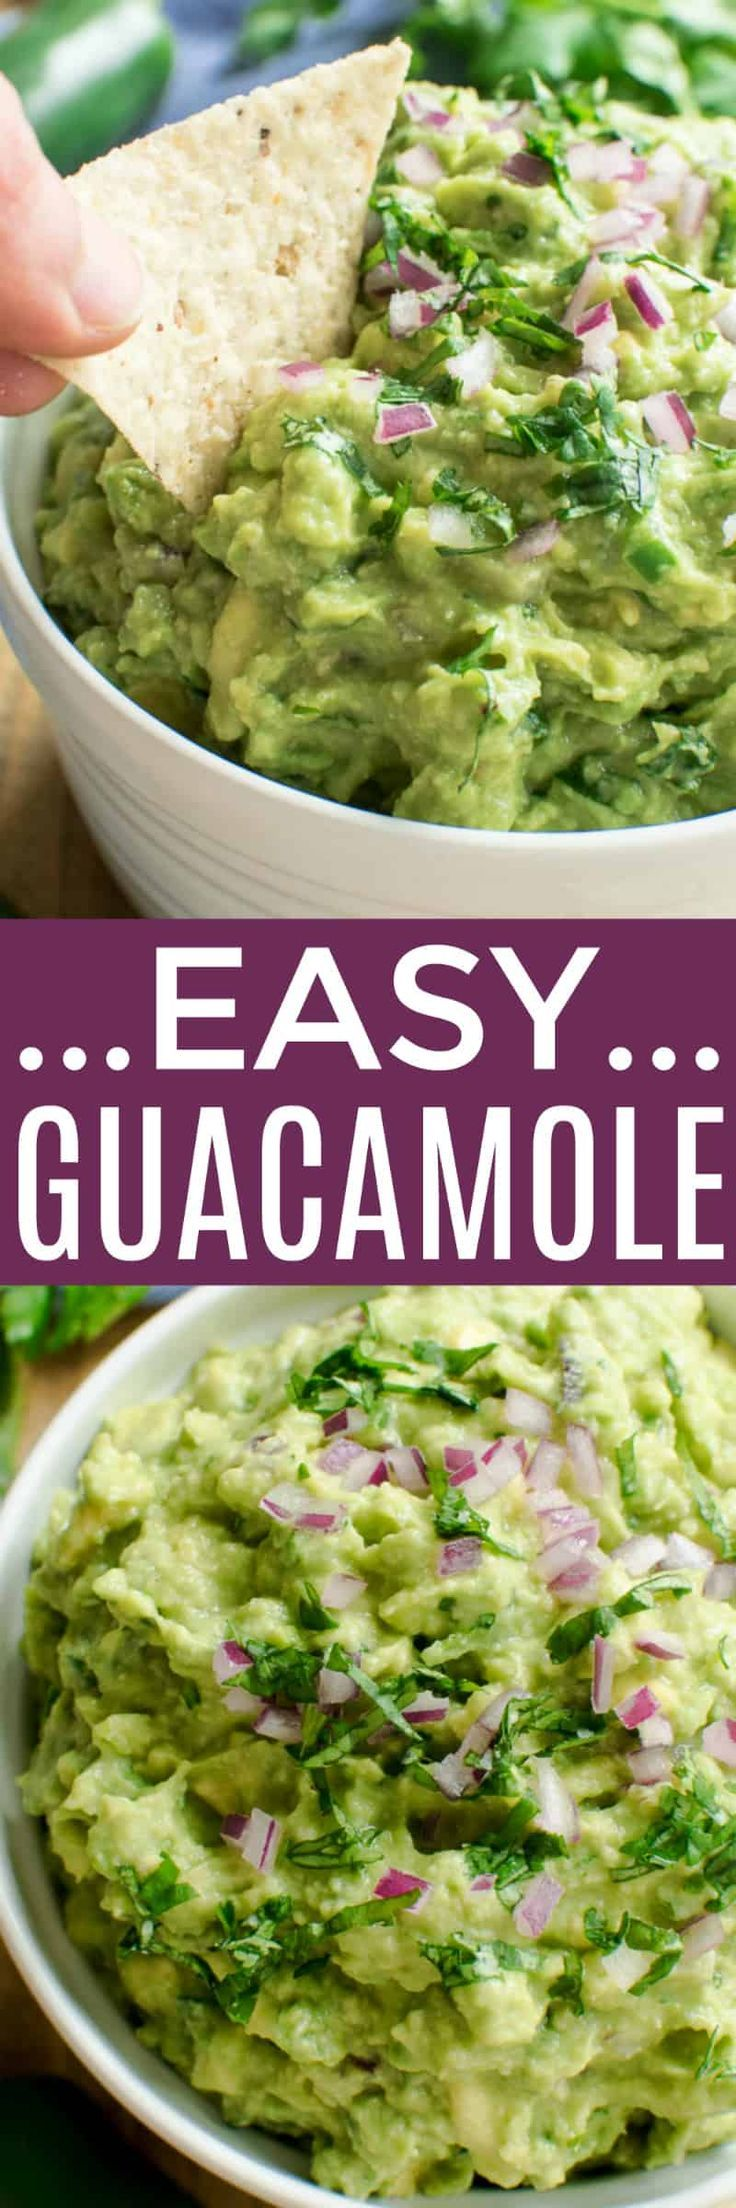 The BEST Easy Guacamole recipe - made with just a handful of ingredients and ready in minutes! This creamy guacamole has the perfect balance of cilantro, lime, and salt, and makes a delicious addition to any Mexican meal. Enjoy it with tortilla chips, veggies, nachos, or even your favorite sandwich. If you love guacamole, you'll LOVE this easy, delicious recipe....guaranteed to become a fast favorite! What is it about guacamole? Seriously....has there ever been anything better? I can (and...